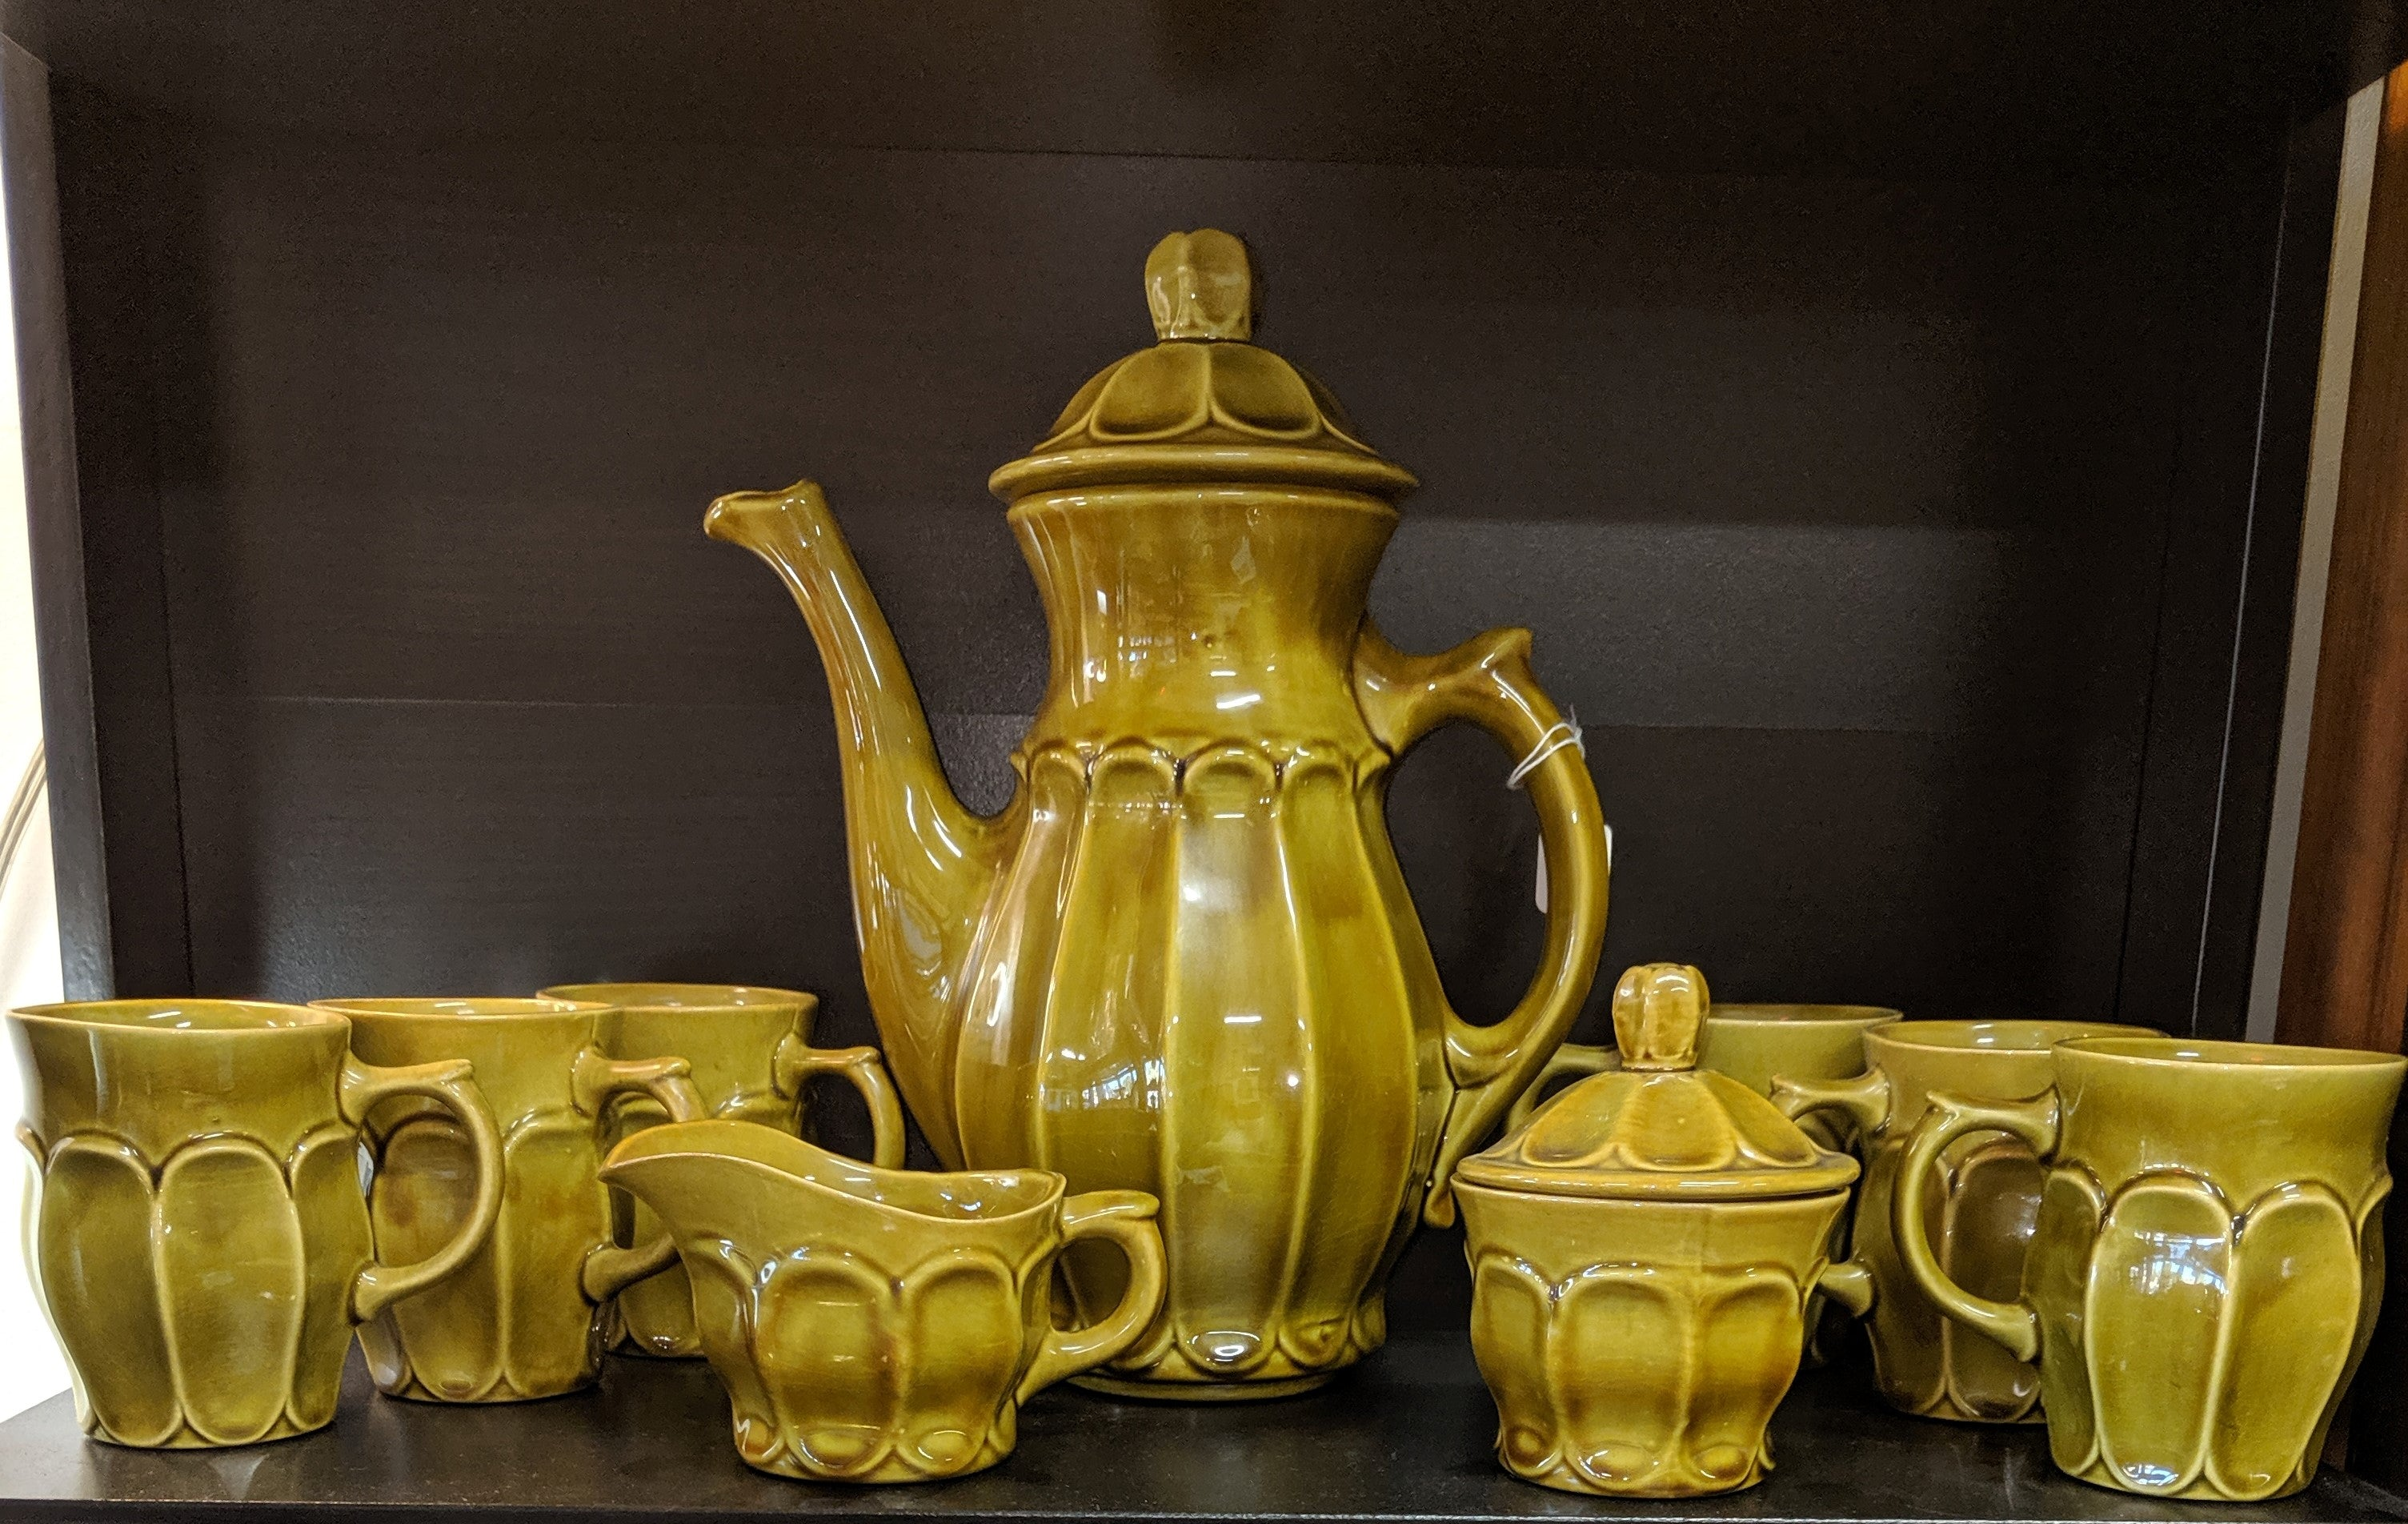 Vintage tea or coffee set